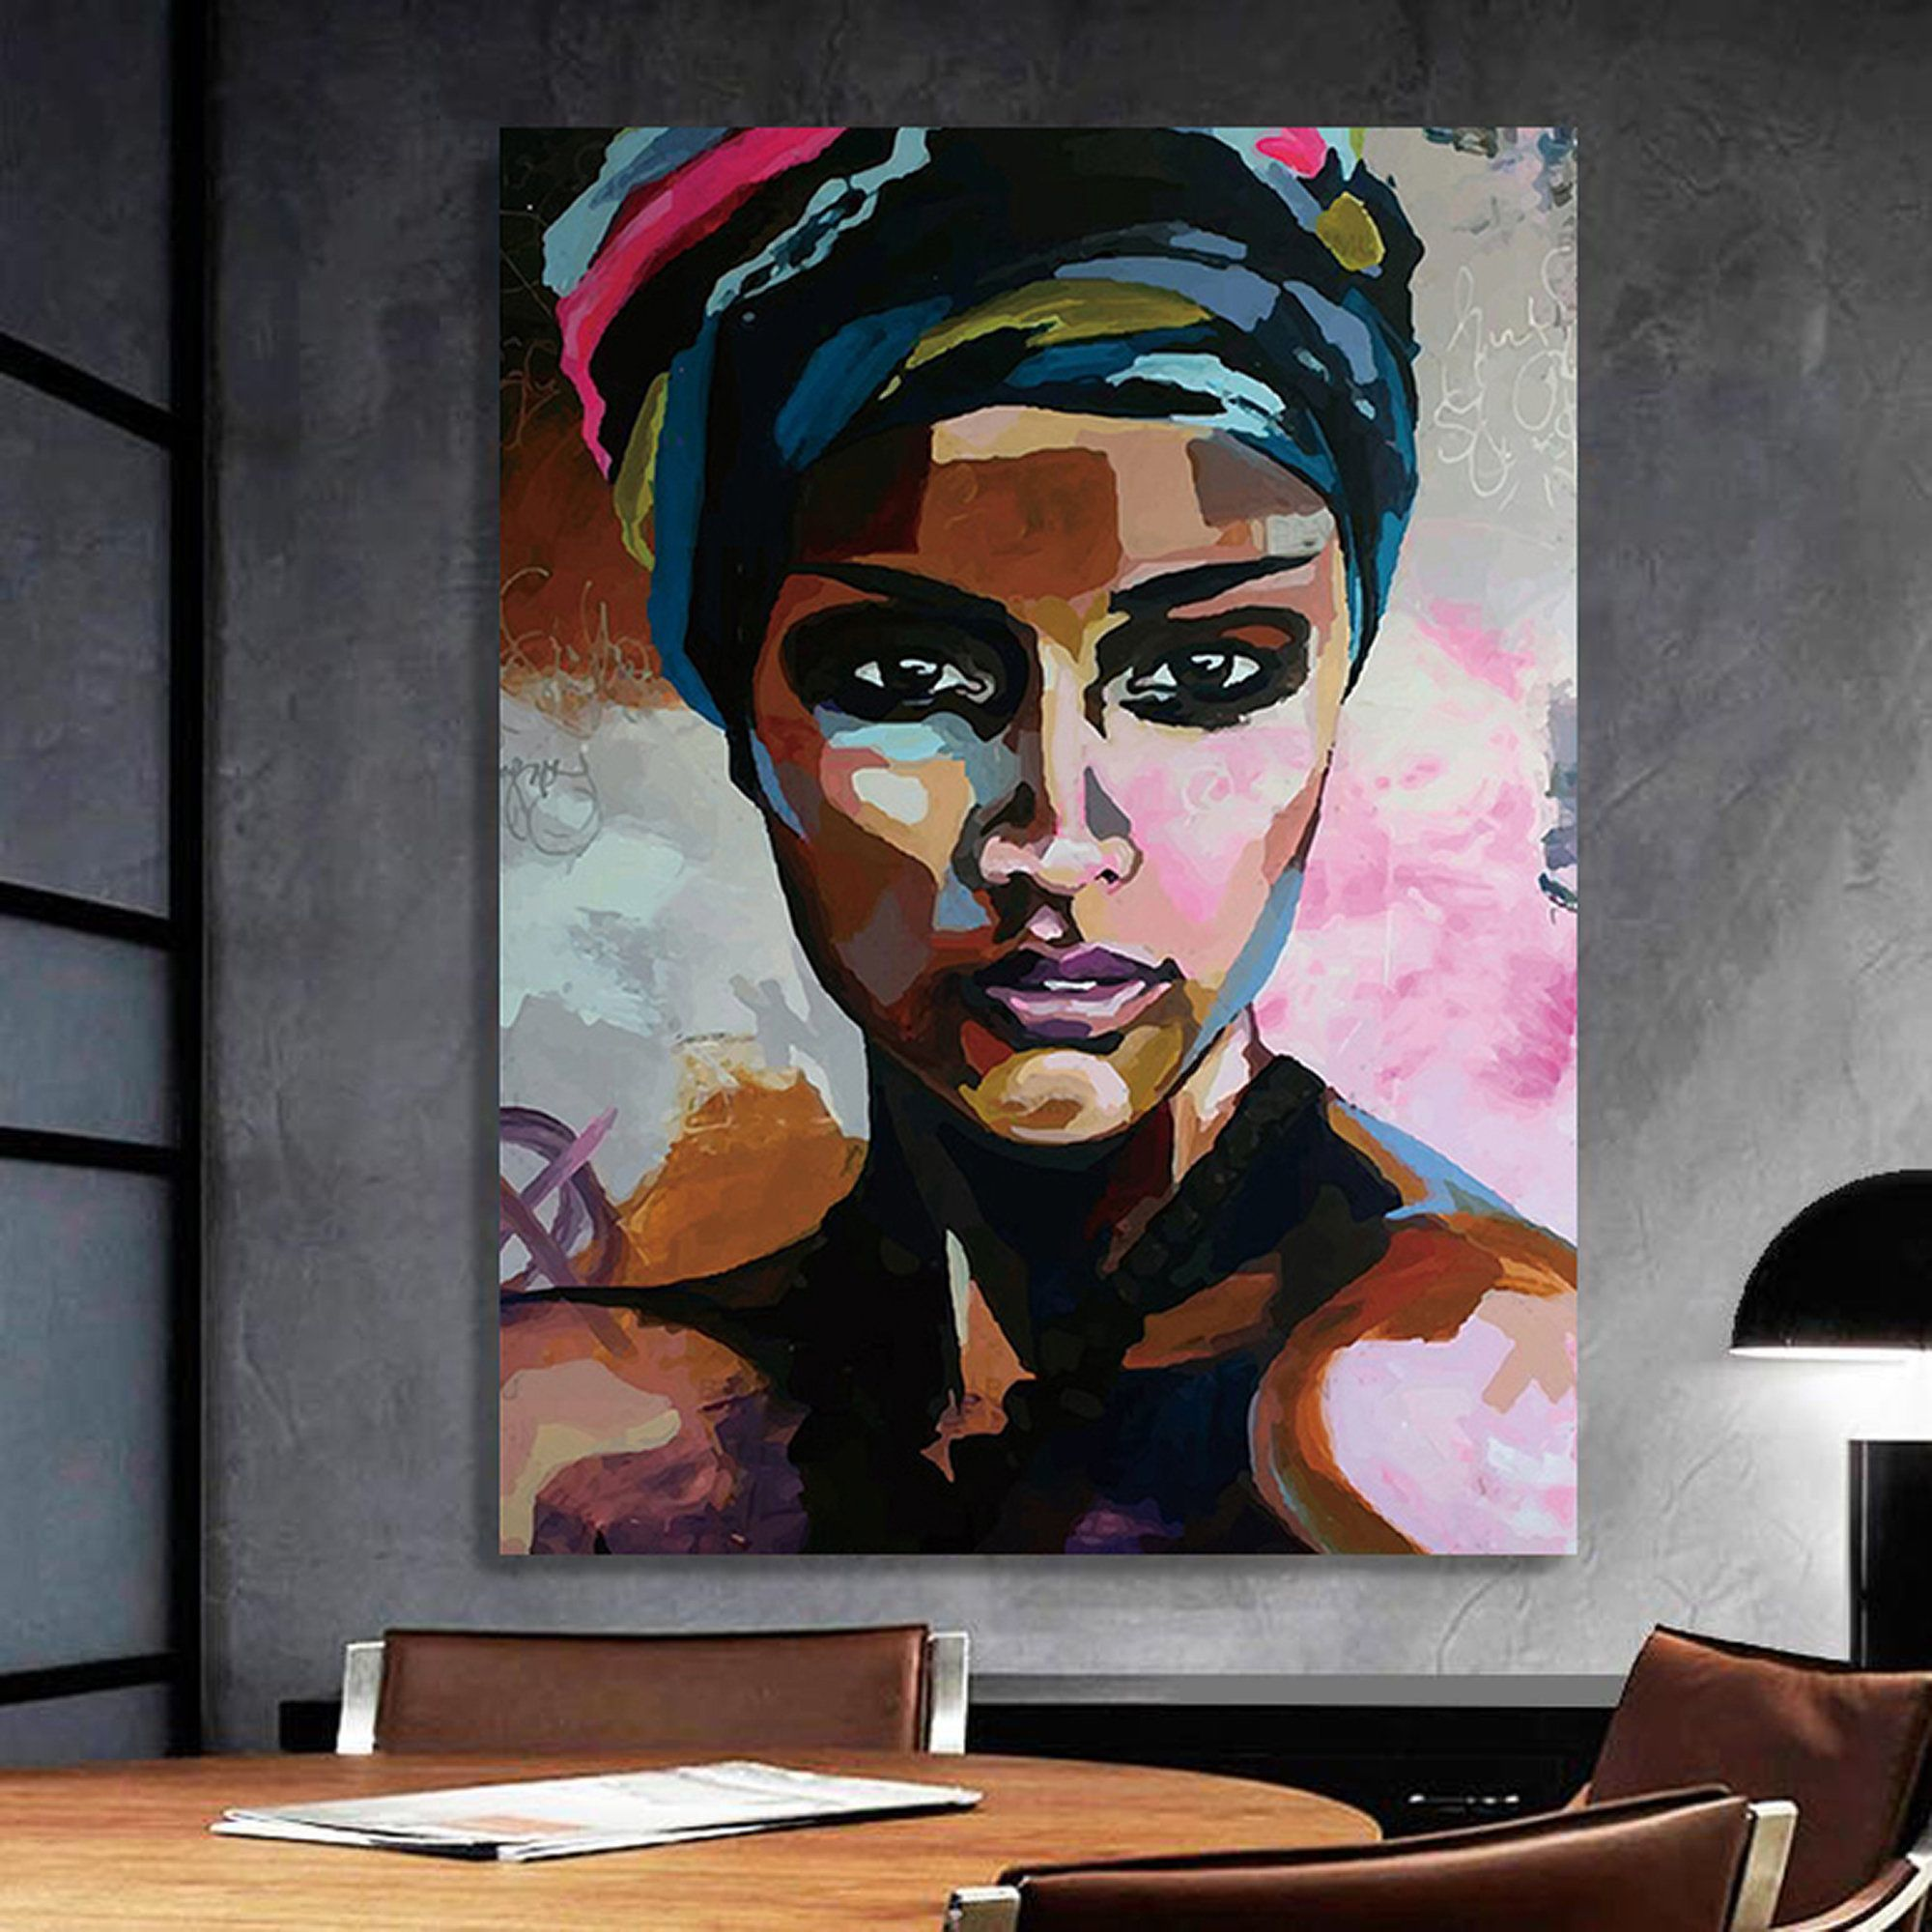 African American Woman Art1 Beauty Woman African Art Black Etsy In 2021 Contemporary African Art African Art African American Art